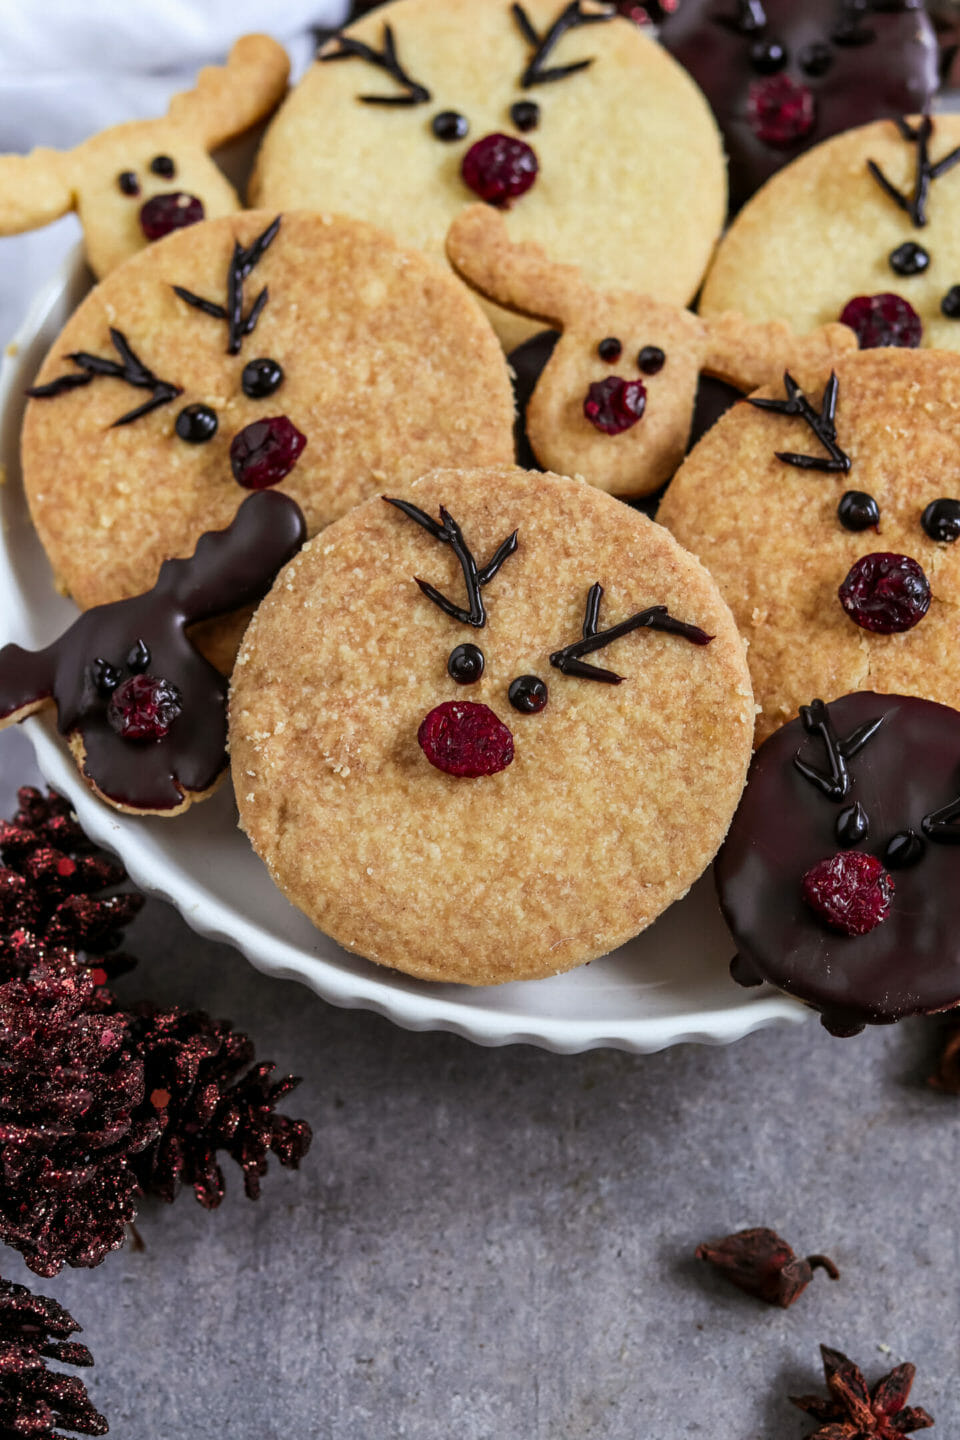 Round Double cut out cookies filled with homemade chocolate nut spread and decorated as reindeers with red cranberry noses.